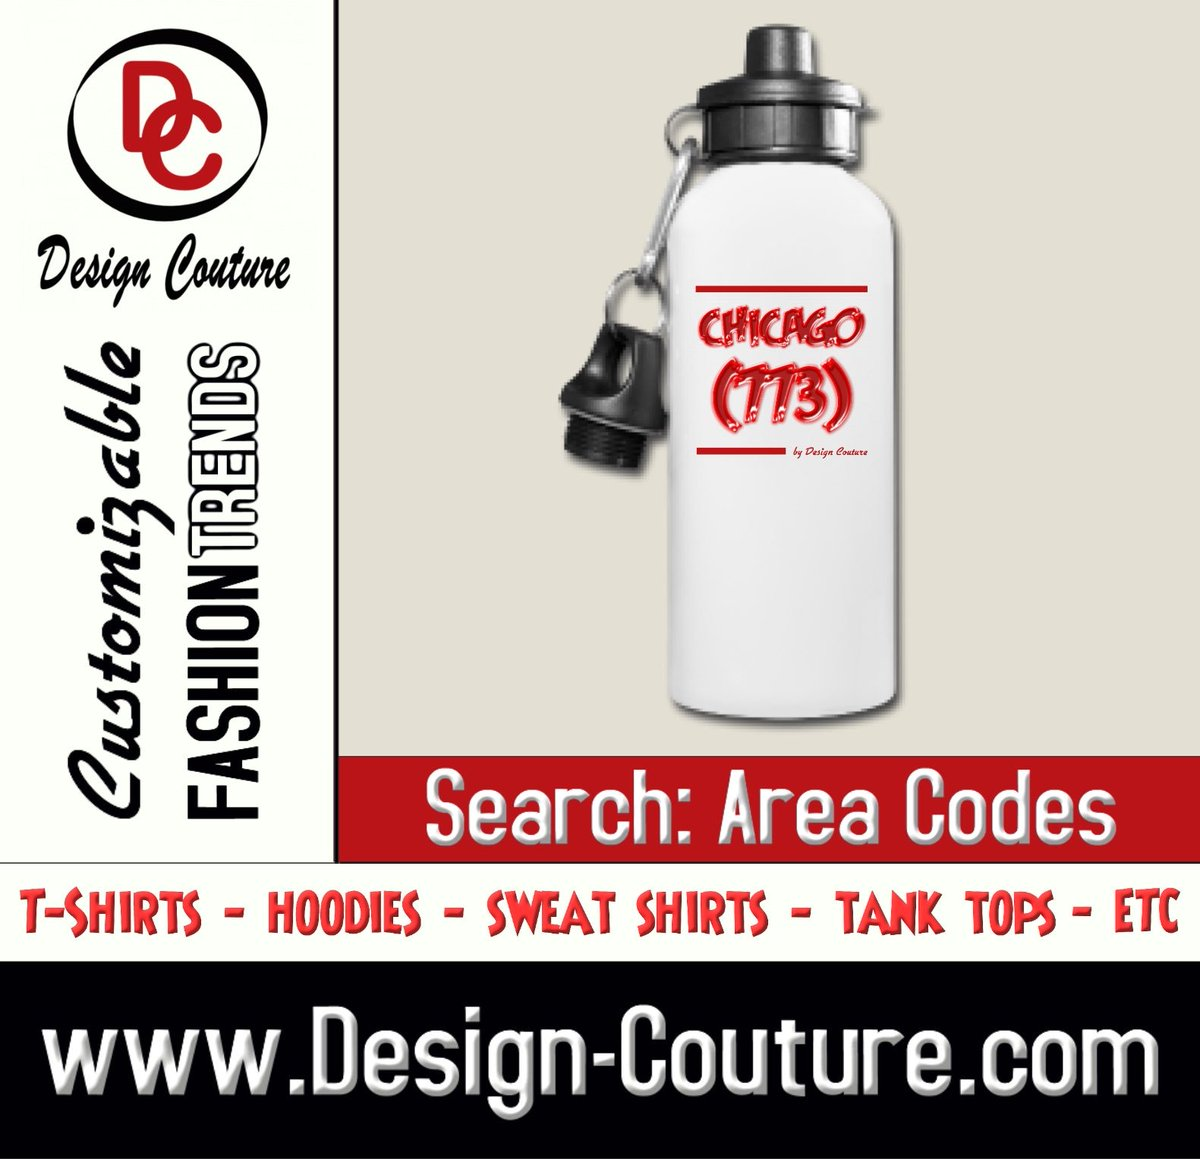 Make a Bold Fashion Statement with Design Couture Customizable Fashion Trends and More.  Design: Chicago (773) Search: Area Codes https://t.co/NACycnvT1Y  Order yours today!  New Designs Uploaded Daily!  Design Couture is a division of JiGANTiC Entertainment https://t.co/UYoDaRangM